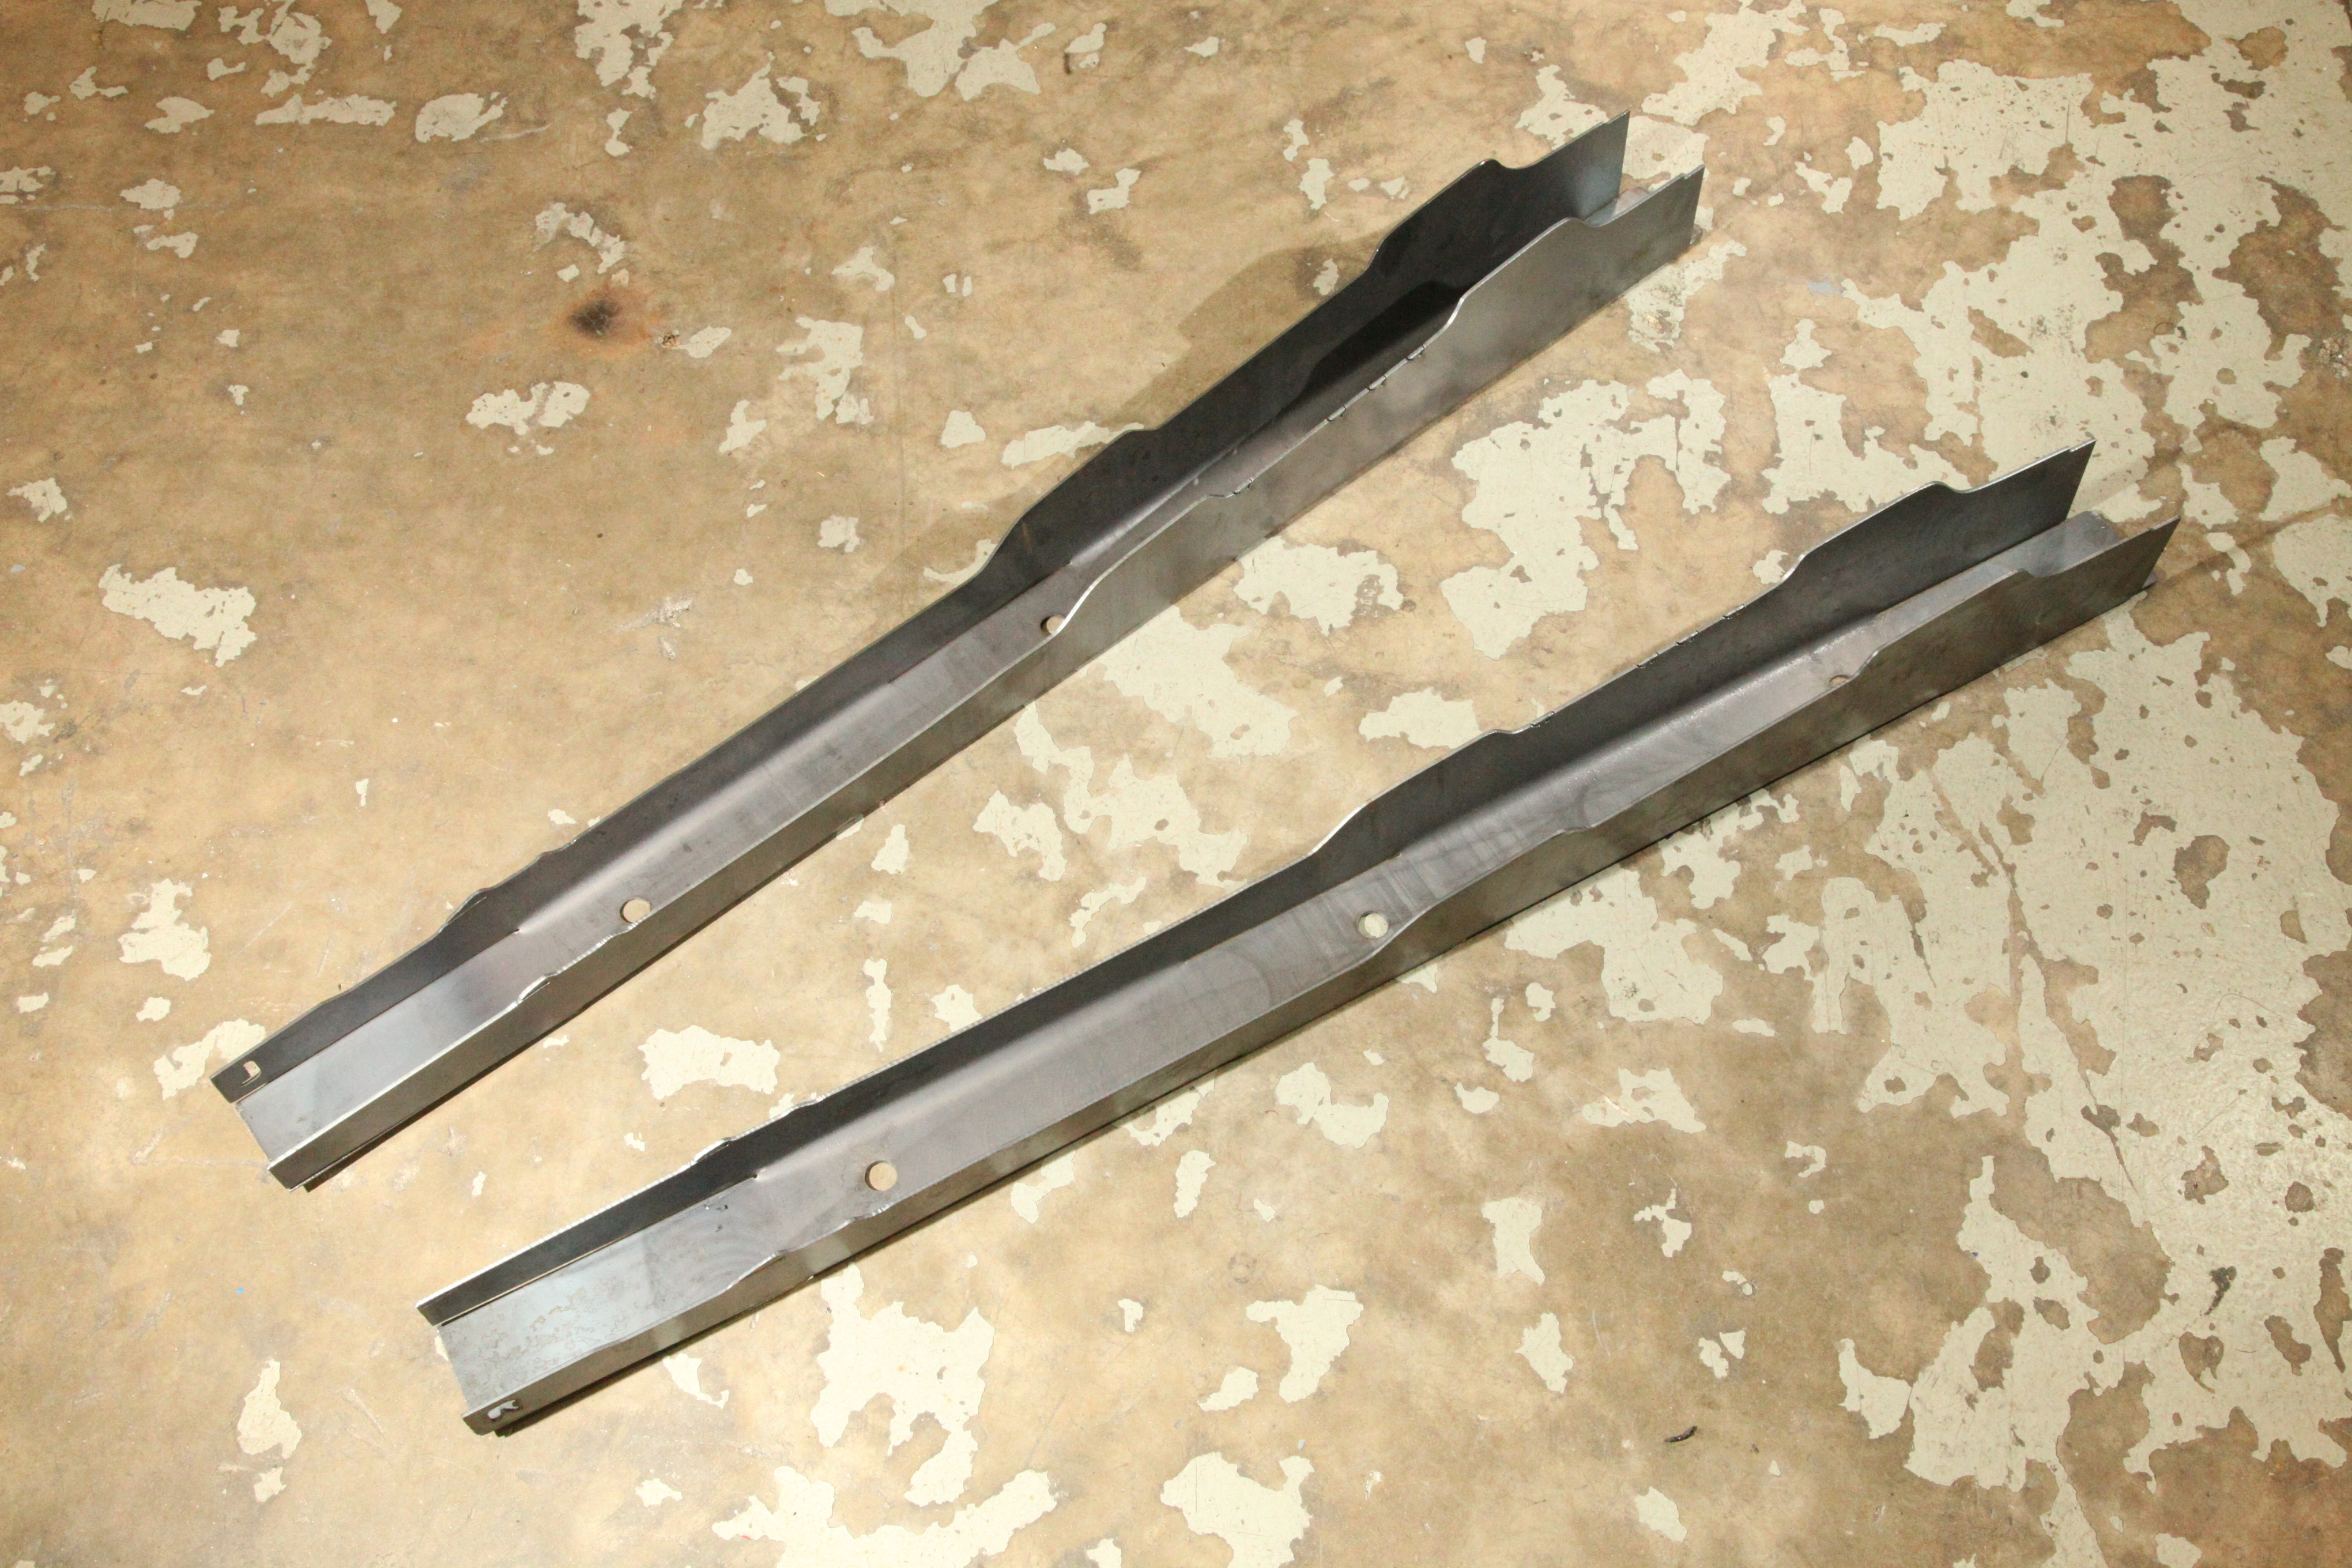 While simple looking, these formed and contoured steel rails are going to transform pretty much all driving-related aspects of our Mopar project, from cockpit noise and road manners, to cornering, braking, and launching. These A-body pieces are made by US Car Tool and sold by Reilly Motorpsorts for $199 a pair. The left and right rails are unique and will only fit one side of the car.